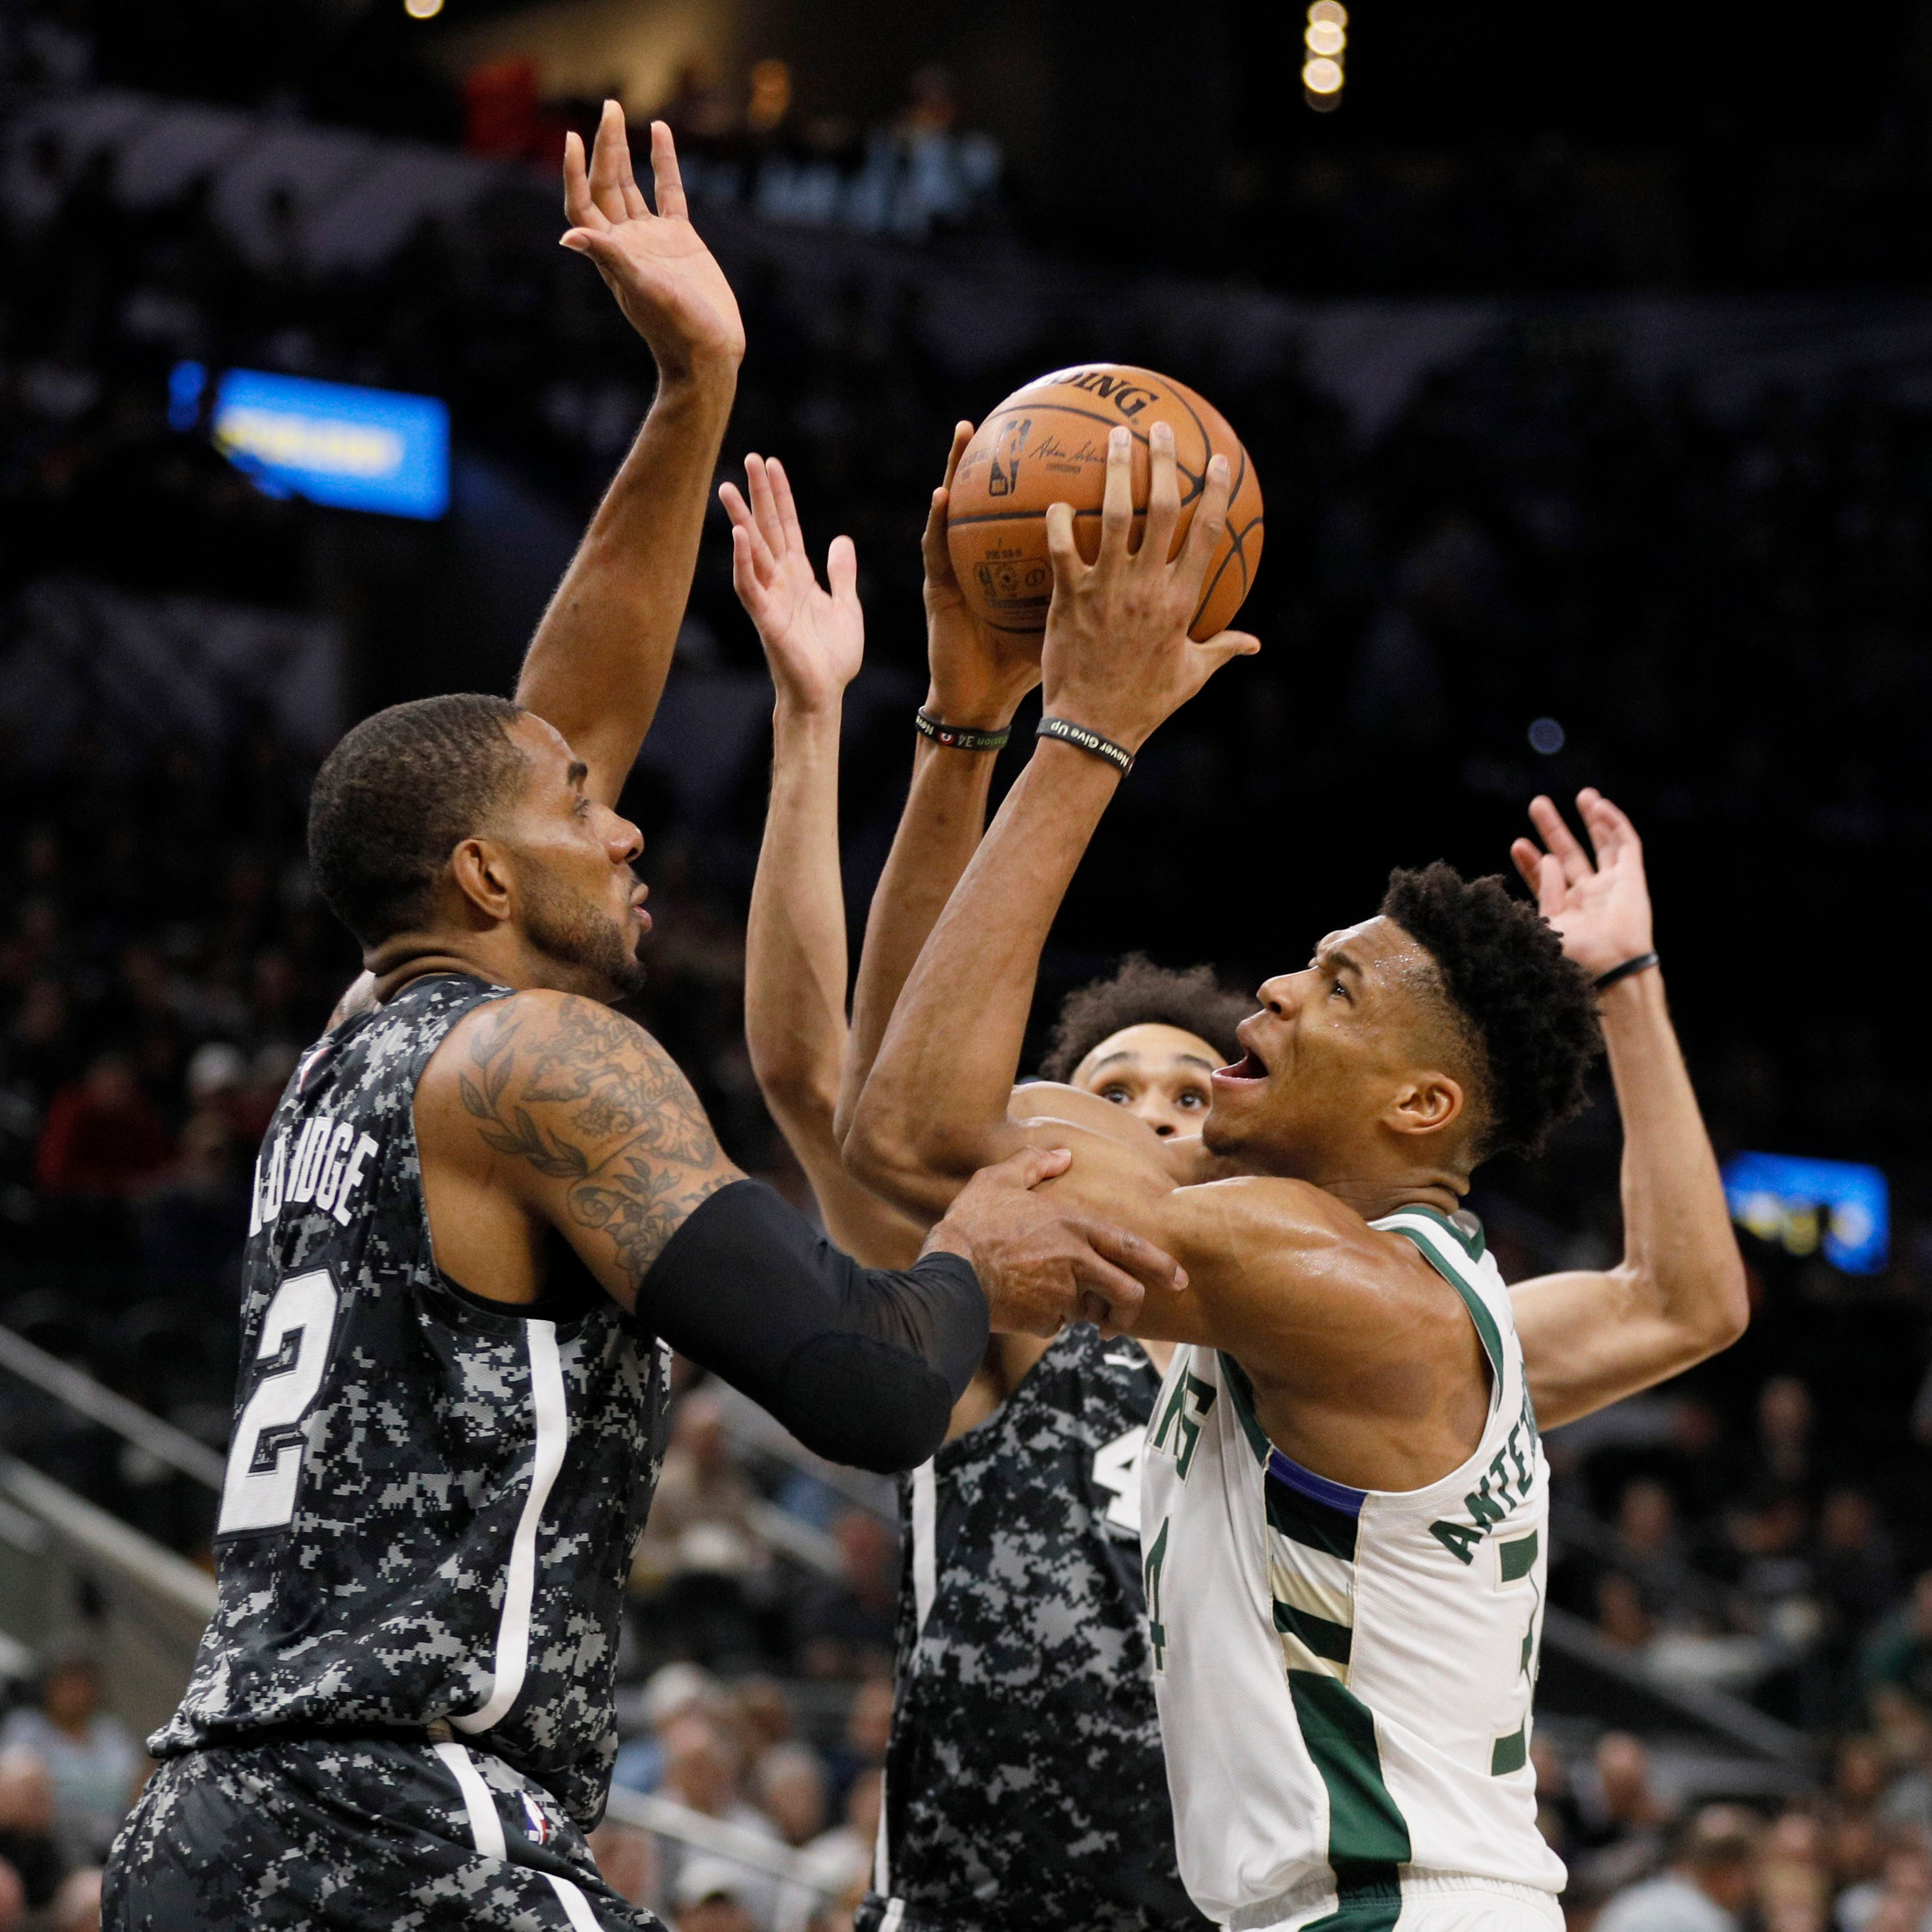 Spurs 121, Bucks 114: Too low on gas